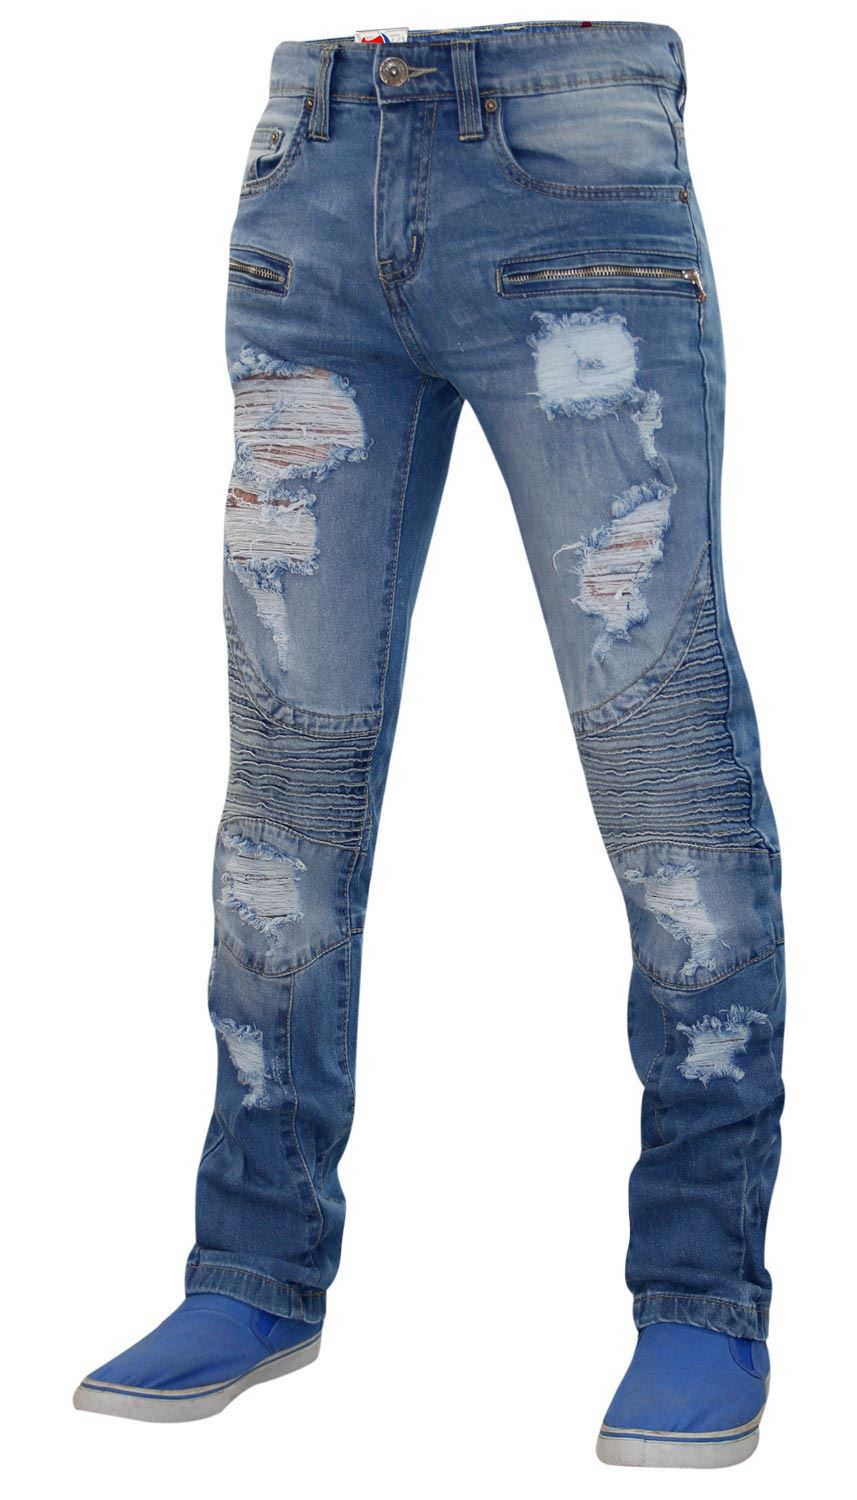 Mens-Ripped-Jeans-Slim-Fit-Distressed-Denim-Biker-Pants-Casual-Cuffed-Trousers thumbnail 4